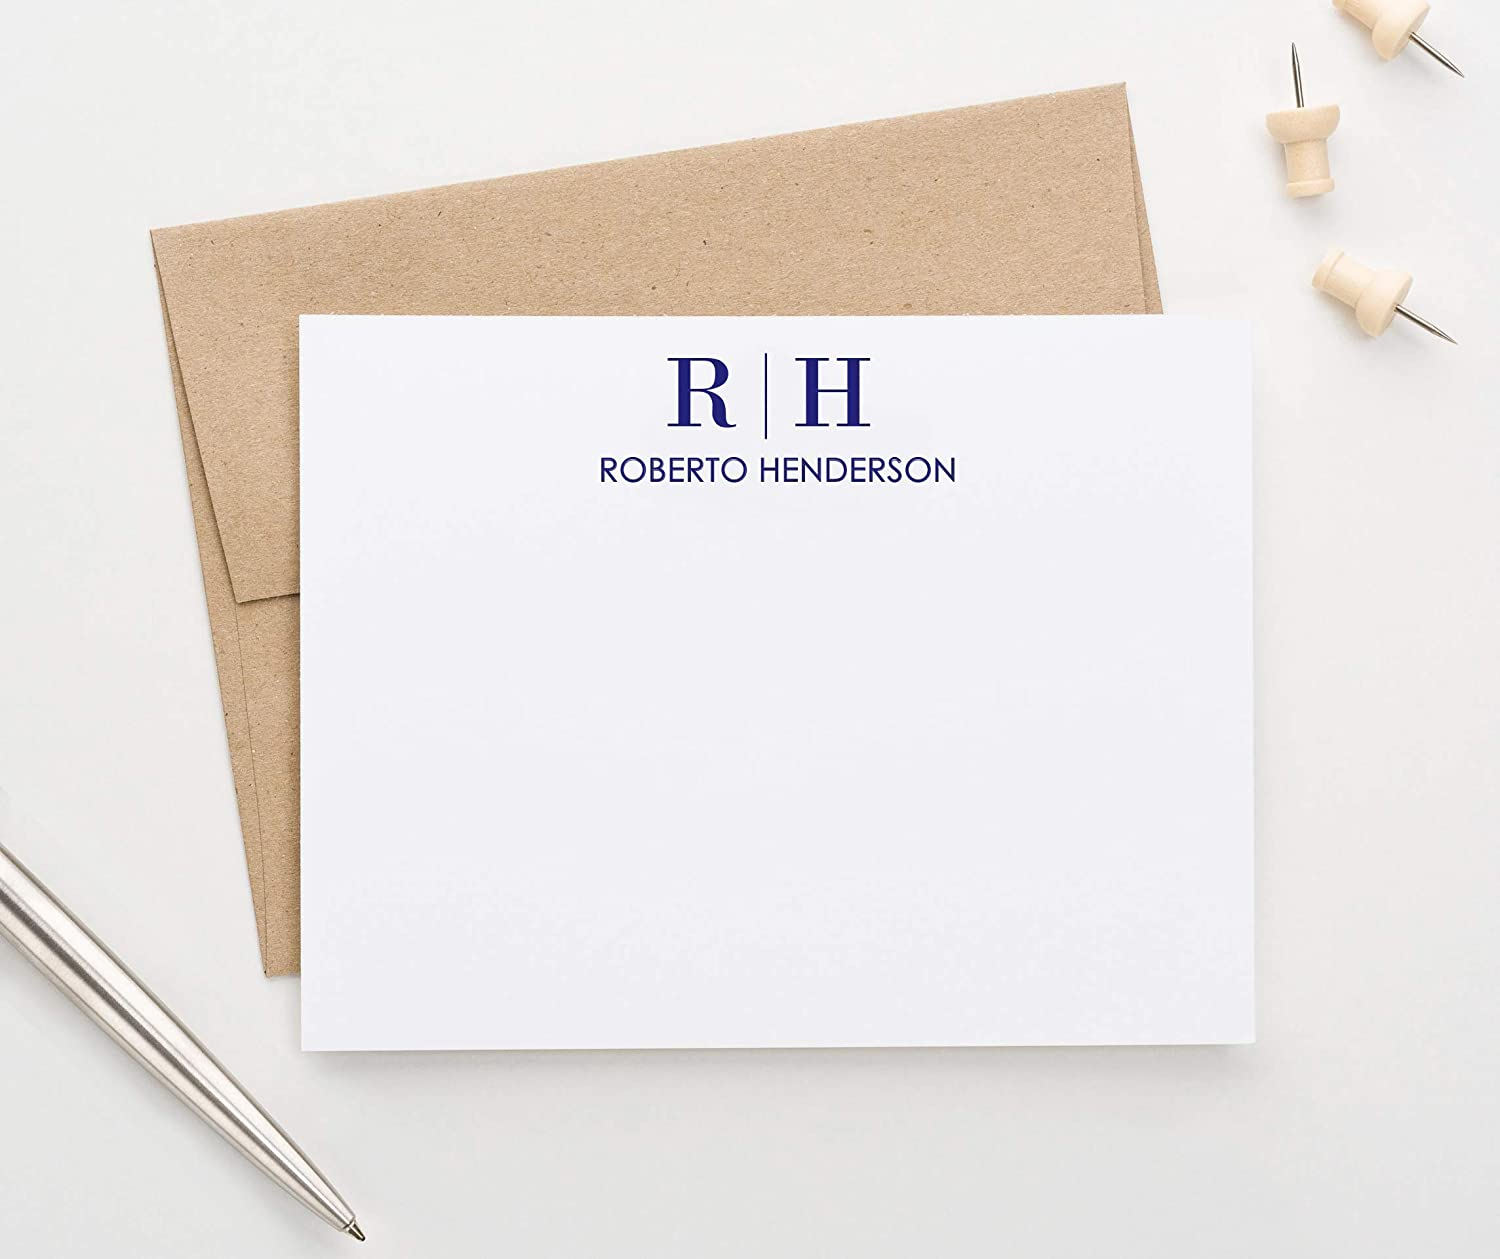 Personalized Two Letter Stationary Monogram Stationary Set FLAT NOTE CARDS, Personalized Monogram Stationery Set, Your Choice of Colors and Quantity